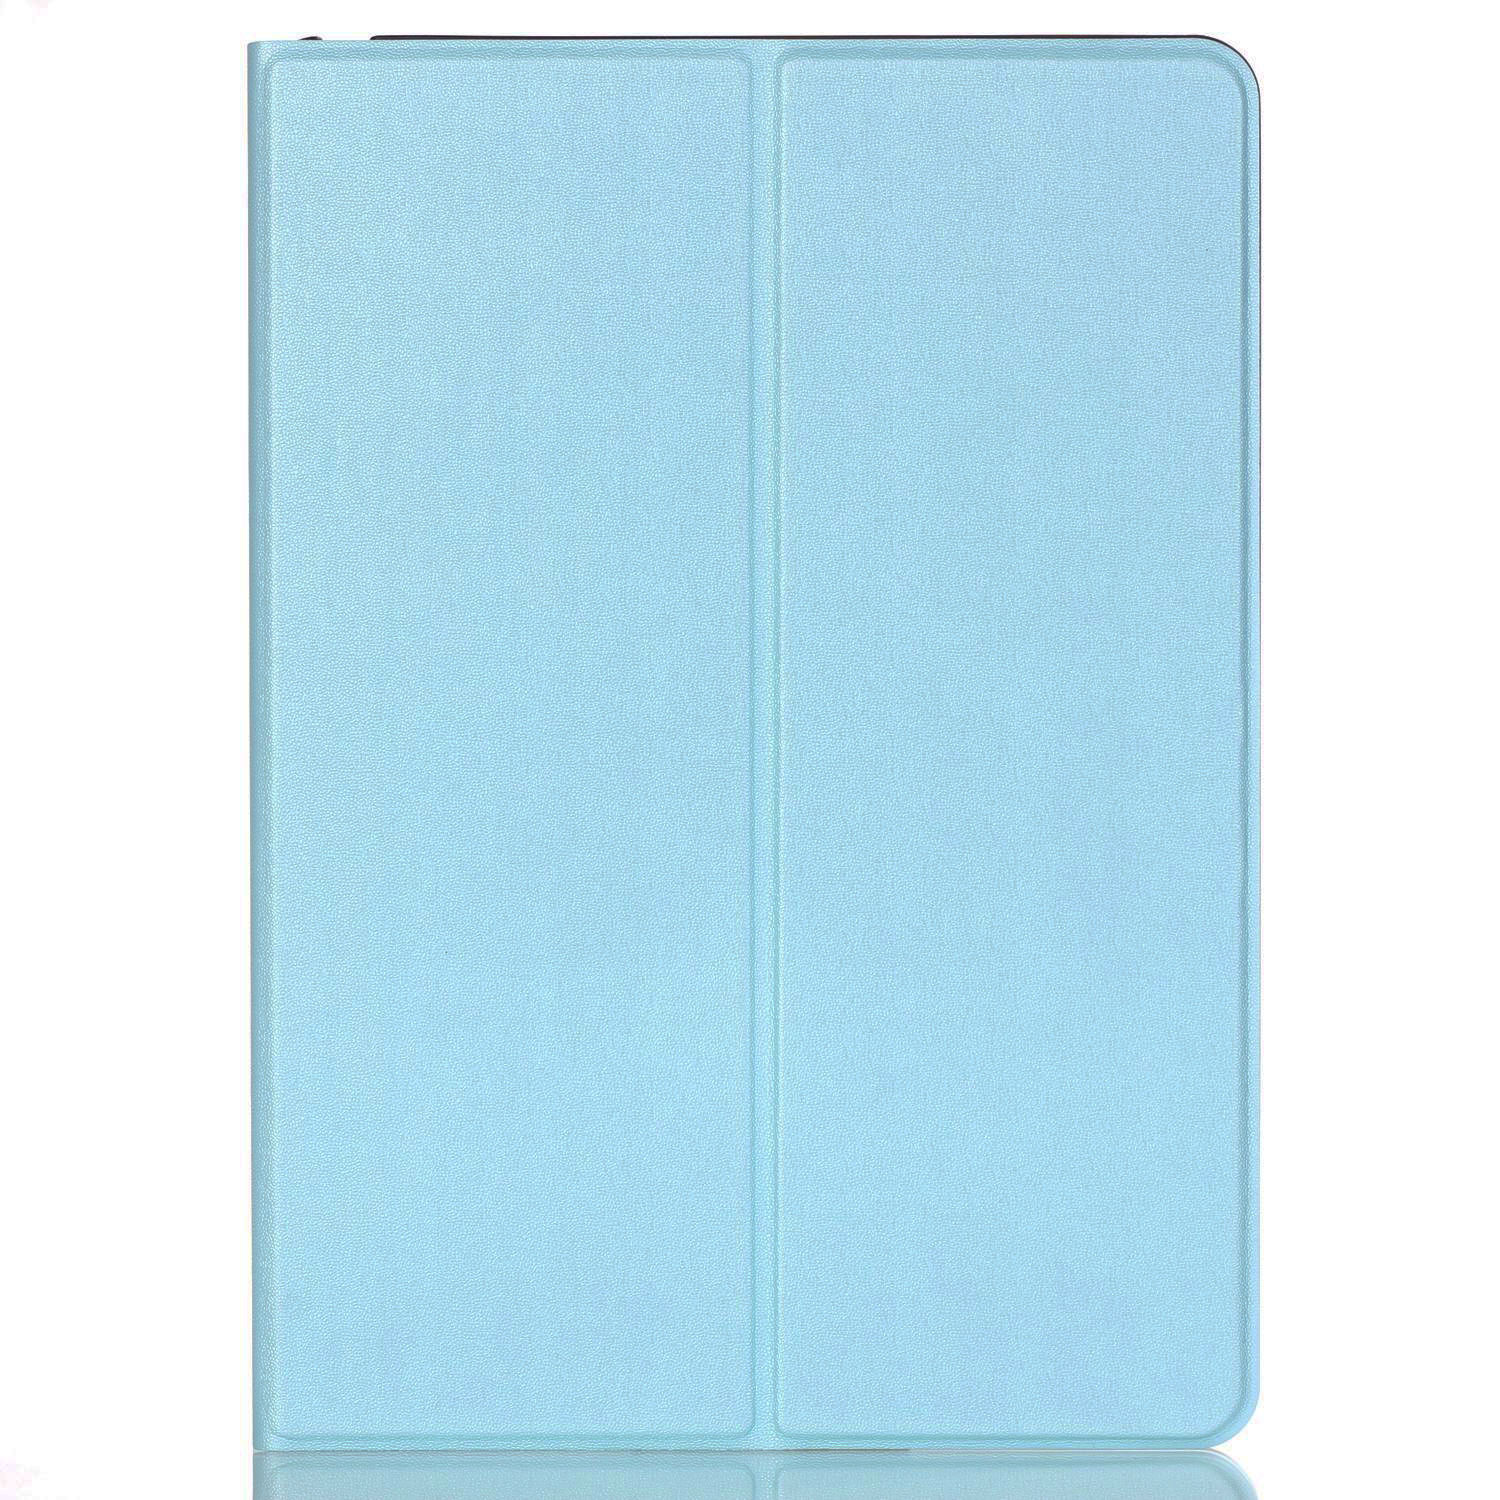 Custodia-Per-Apple-IPAD-Pro-IN-9-7-Pollici-Case-Cover-Protettiva-Skin-Shell miniatura 26